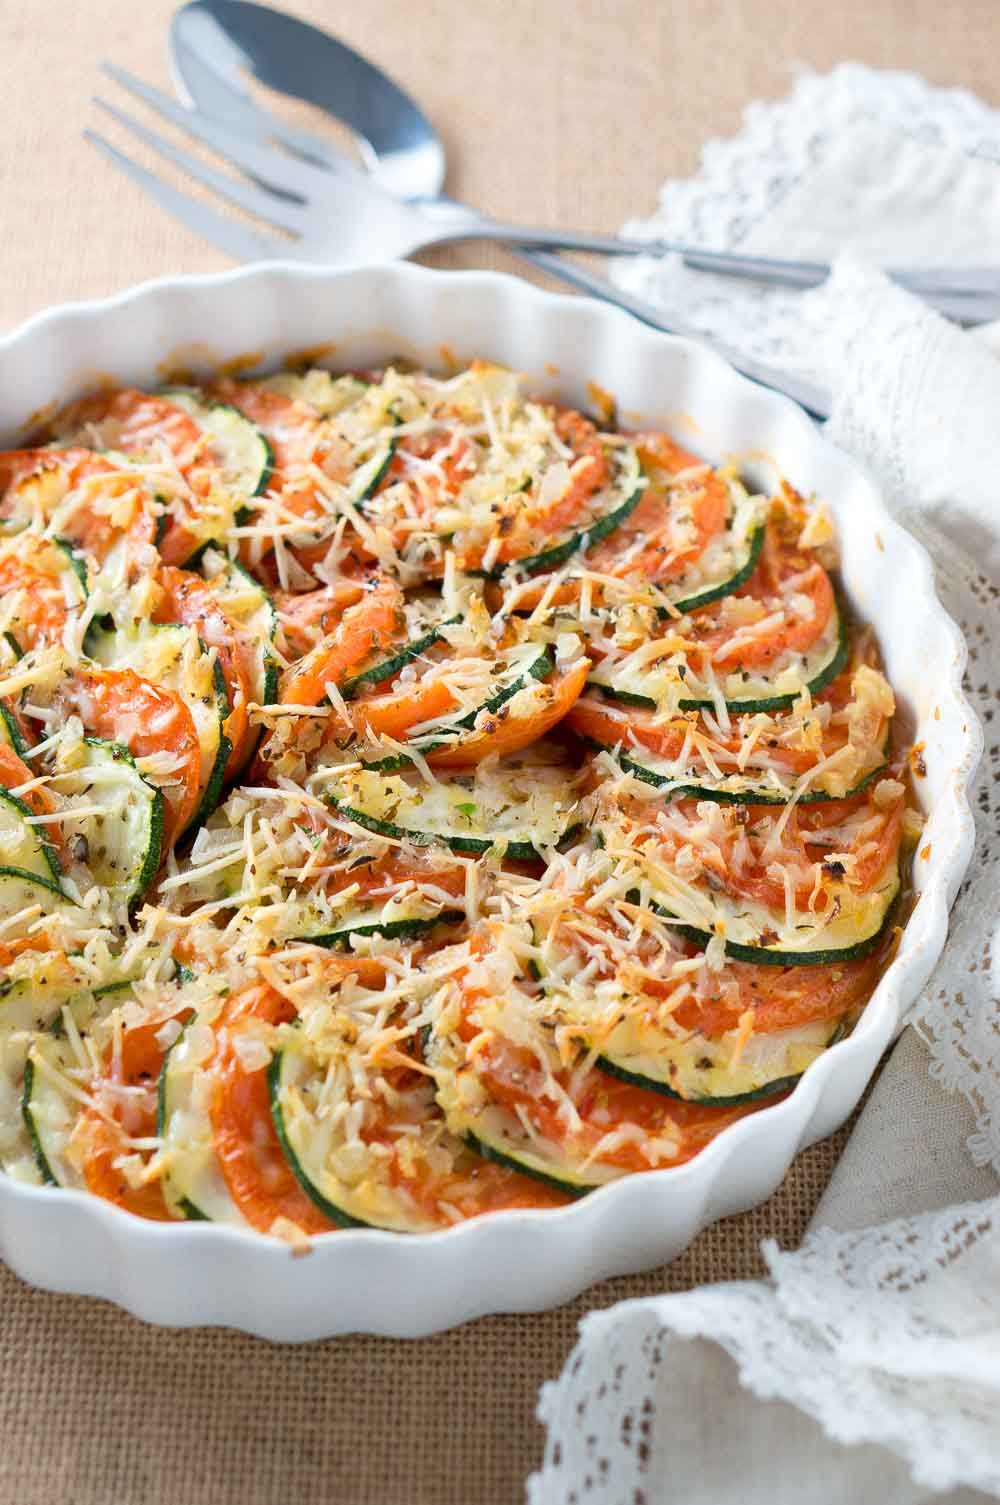 Parmesan Zucchini and Tomato Gratin - Thinly sliced zucchini and tomatoes, layered and baked with onion & garlic and topped with shredded parmesan.